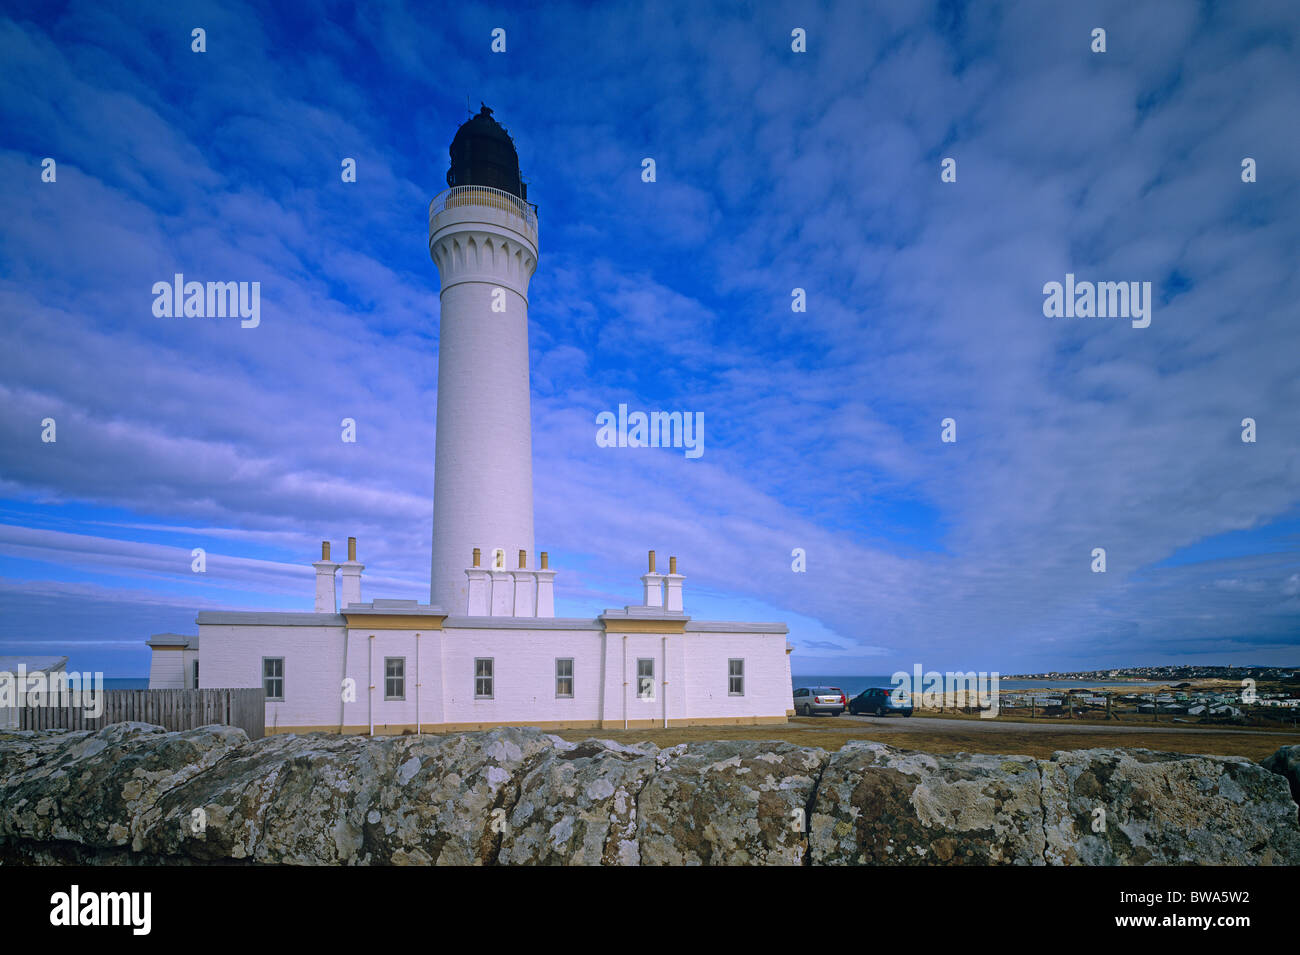 Covesea Skerries Lighthouse at Lossiemouth, Moray Firth, Scotland - Stock Image